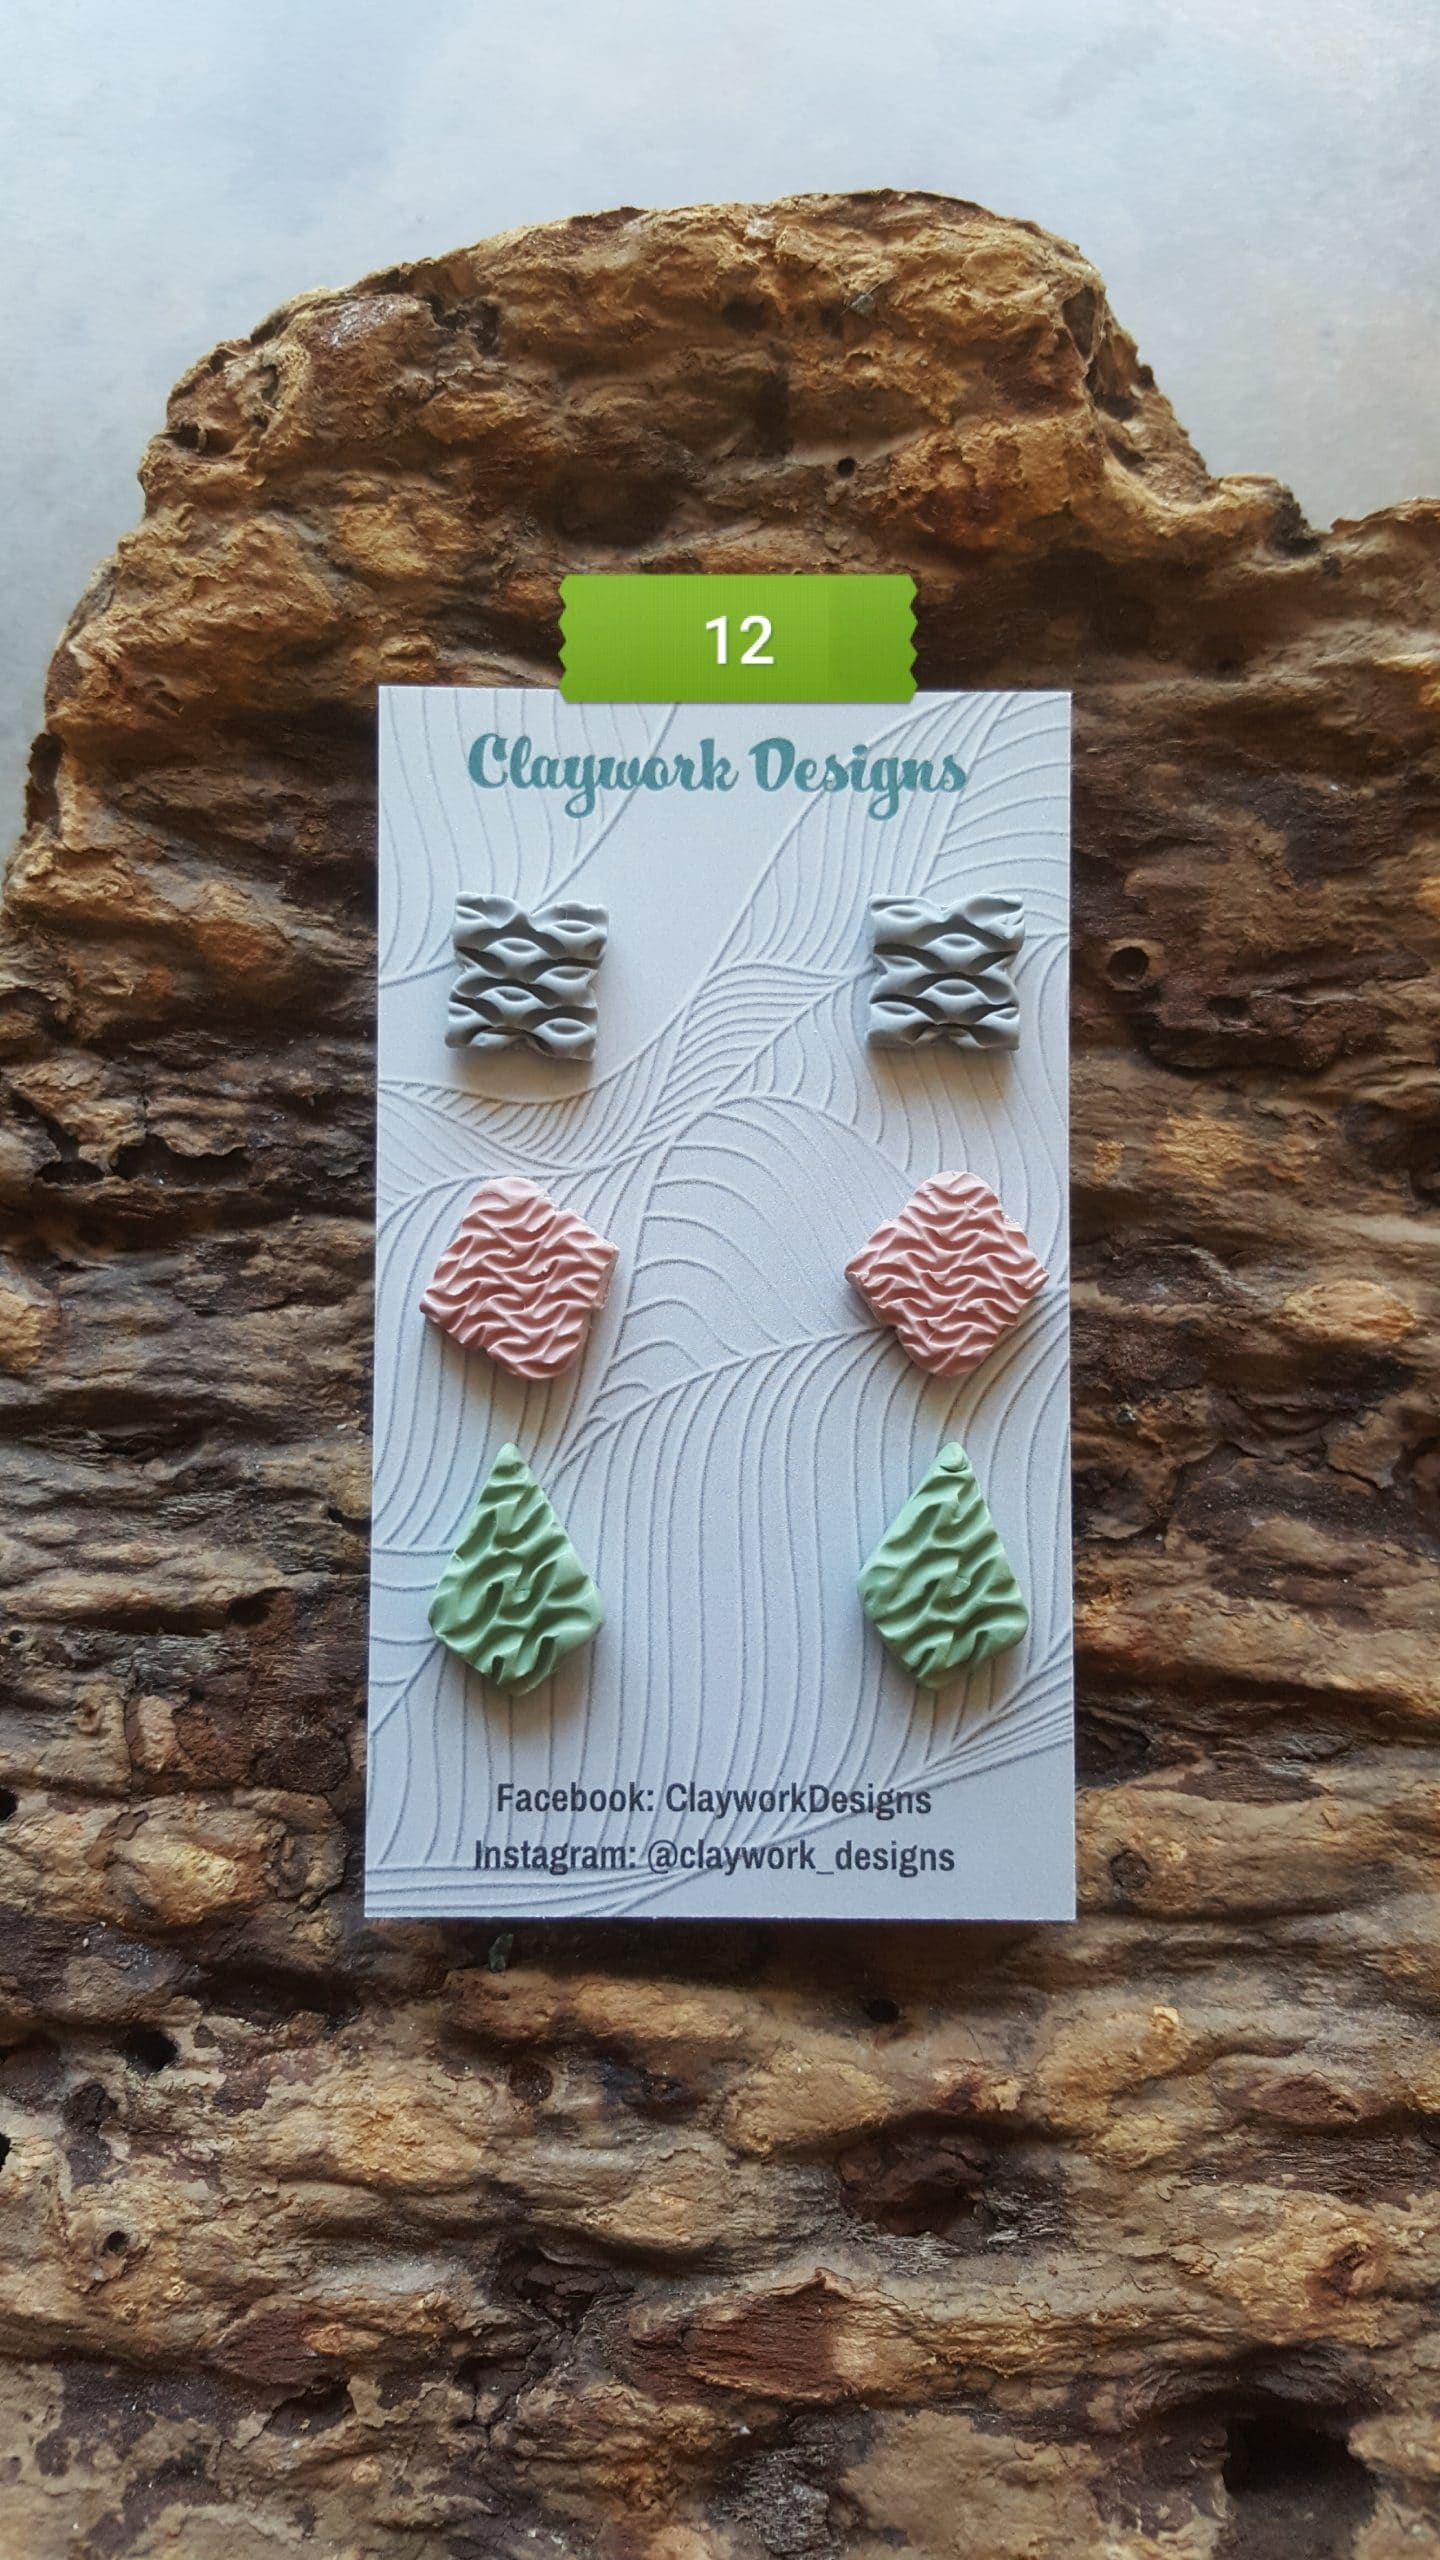 Wirework Designs | Handcrafted chainmaille jewellery and chainmaille products | Chainmaille Weave Stud Earring - 3 Packs | 20210620_172508